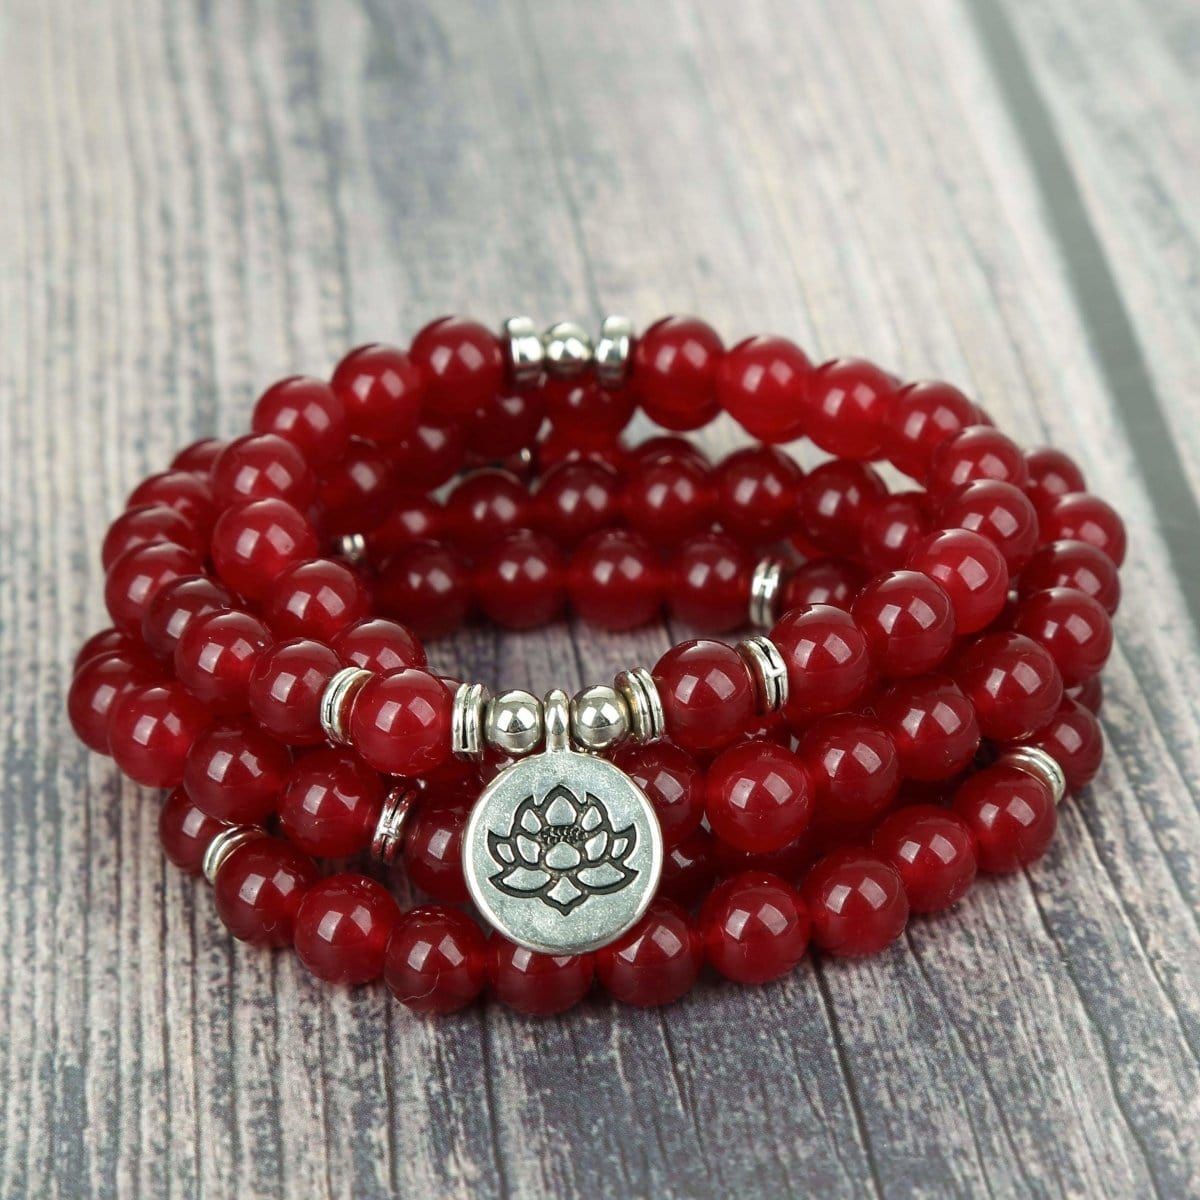 Natural Garnet Stone Lotus Mala Bracelet/Necklace - Prana Heart: Everyday Mindfulness